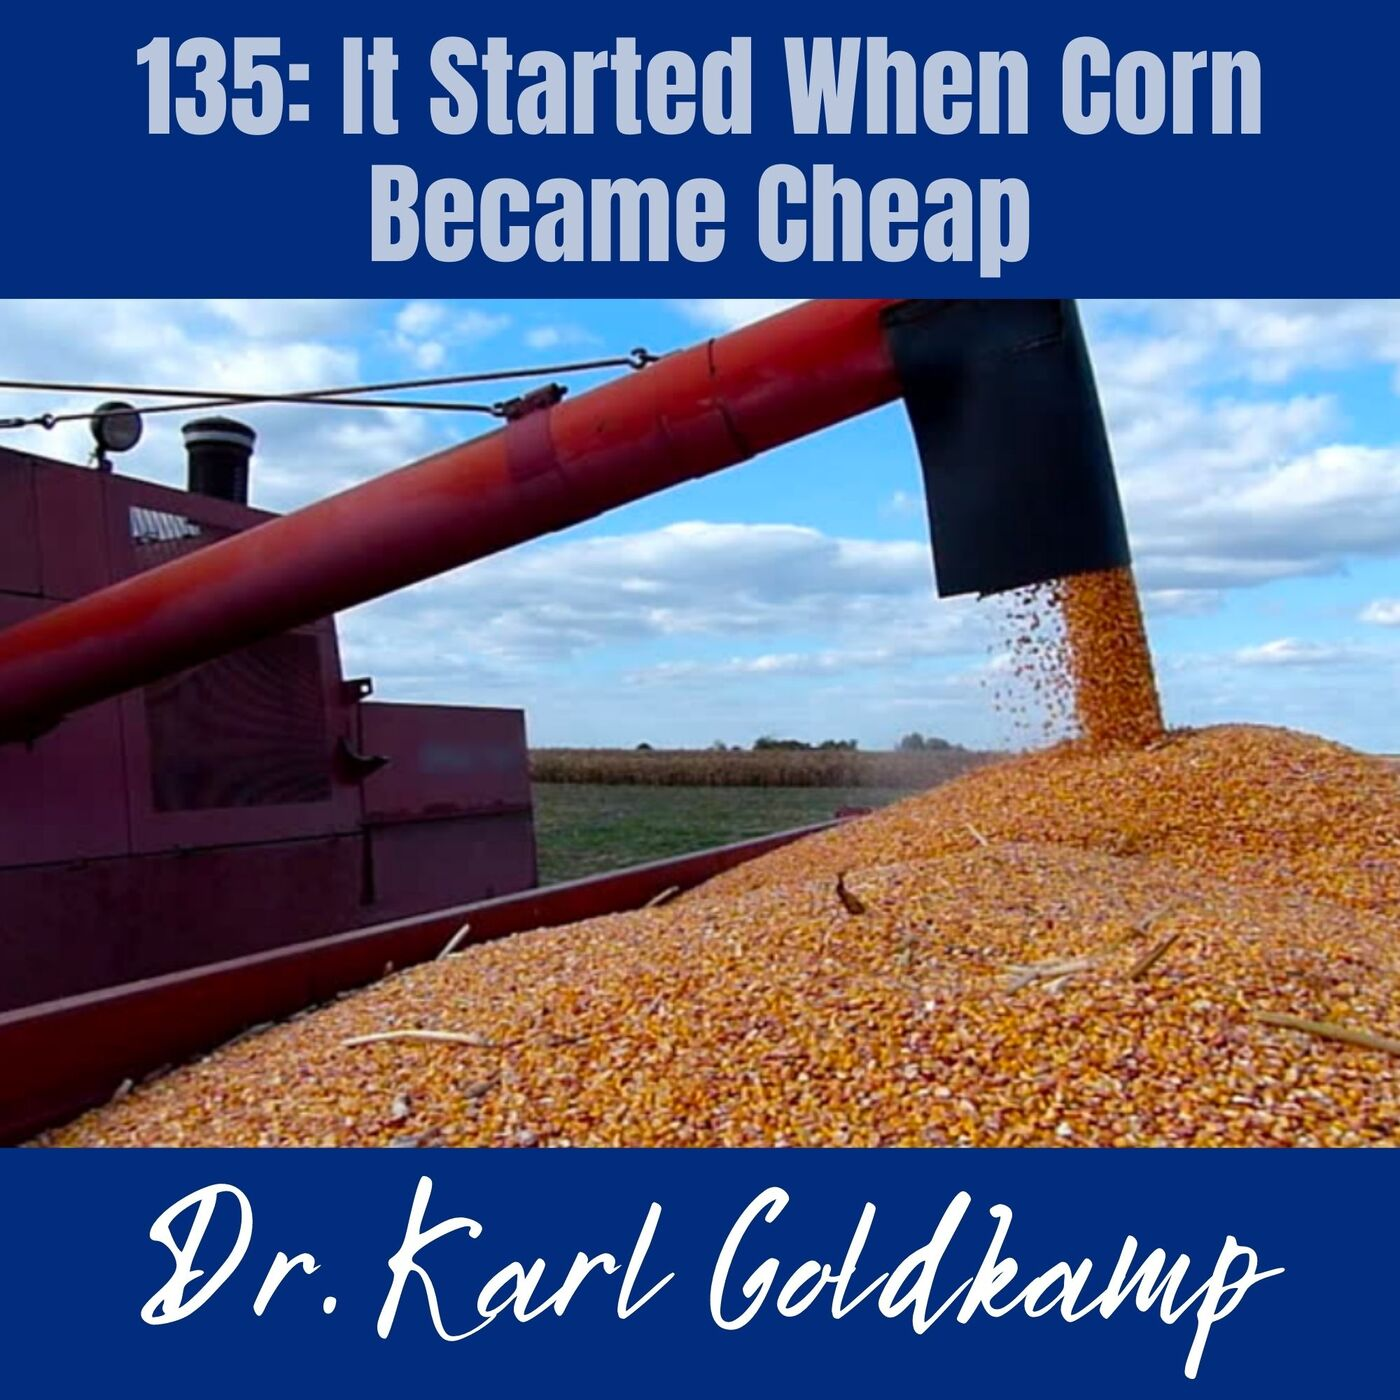 135: It Started When Corn Became Cheap